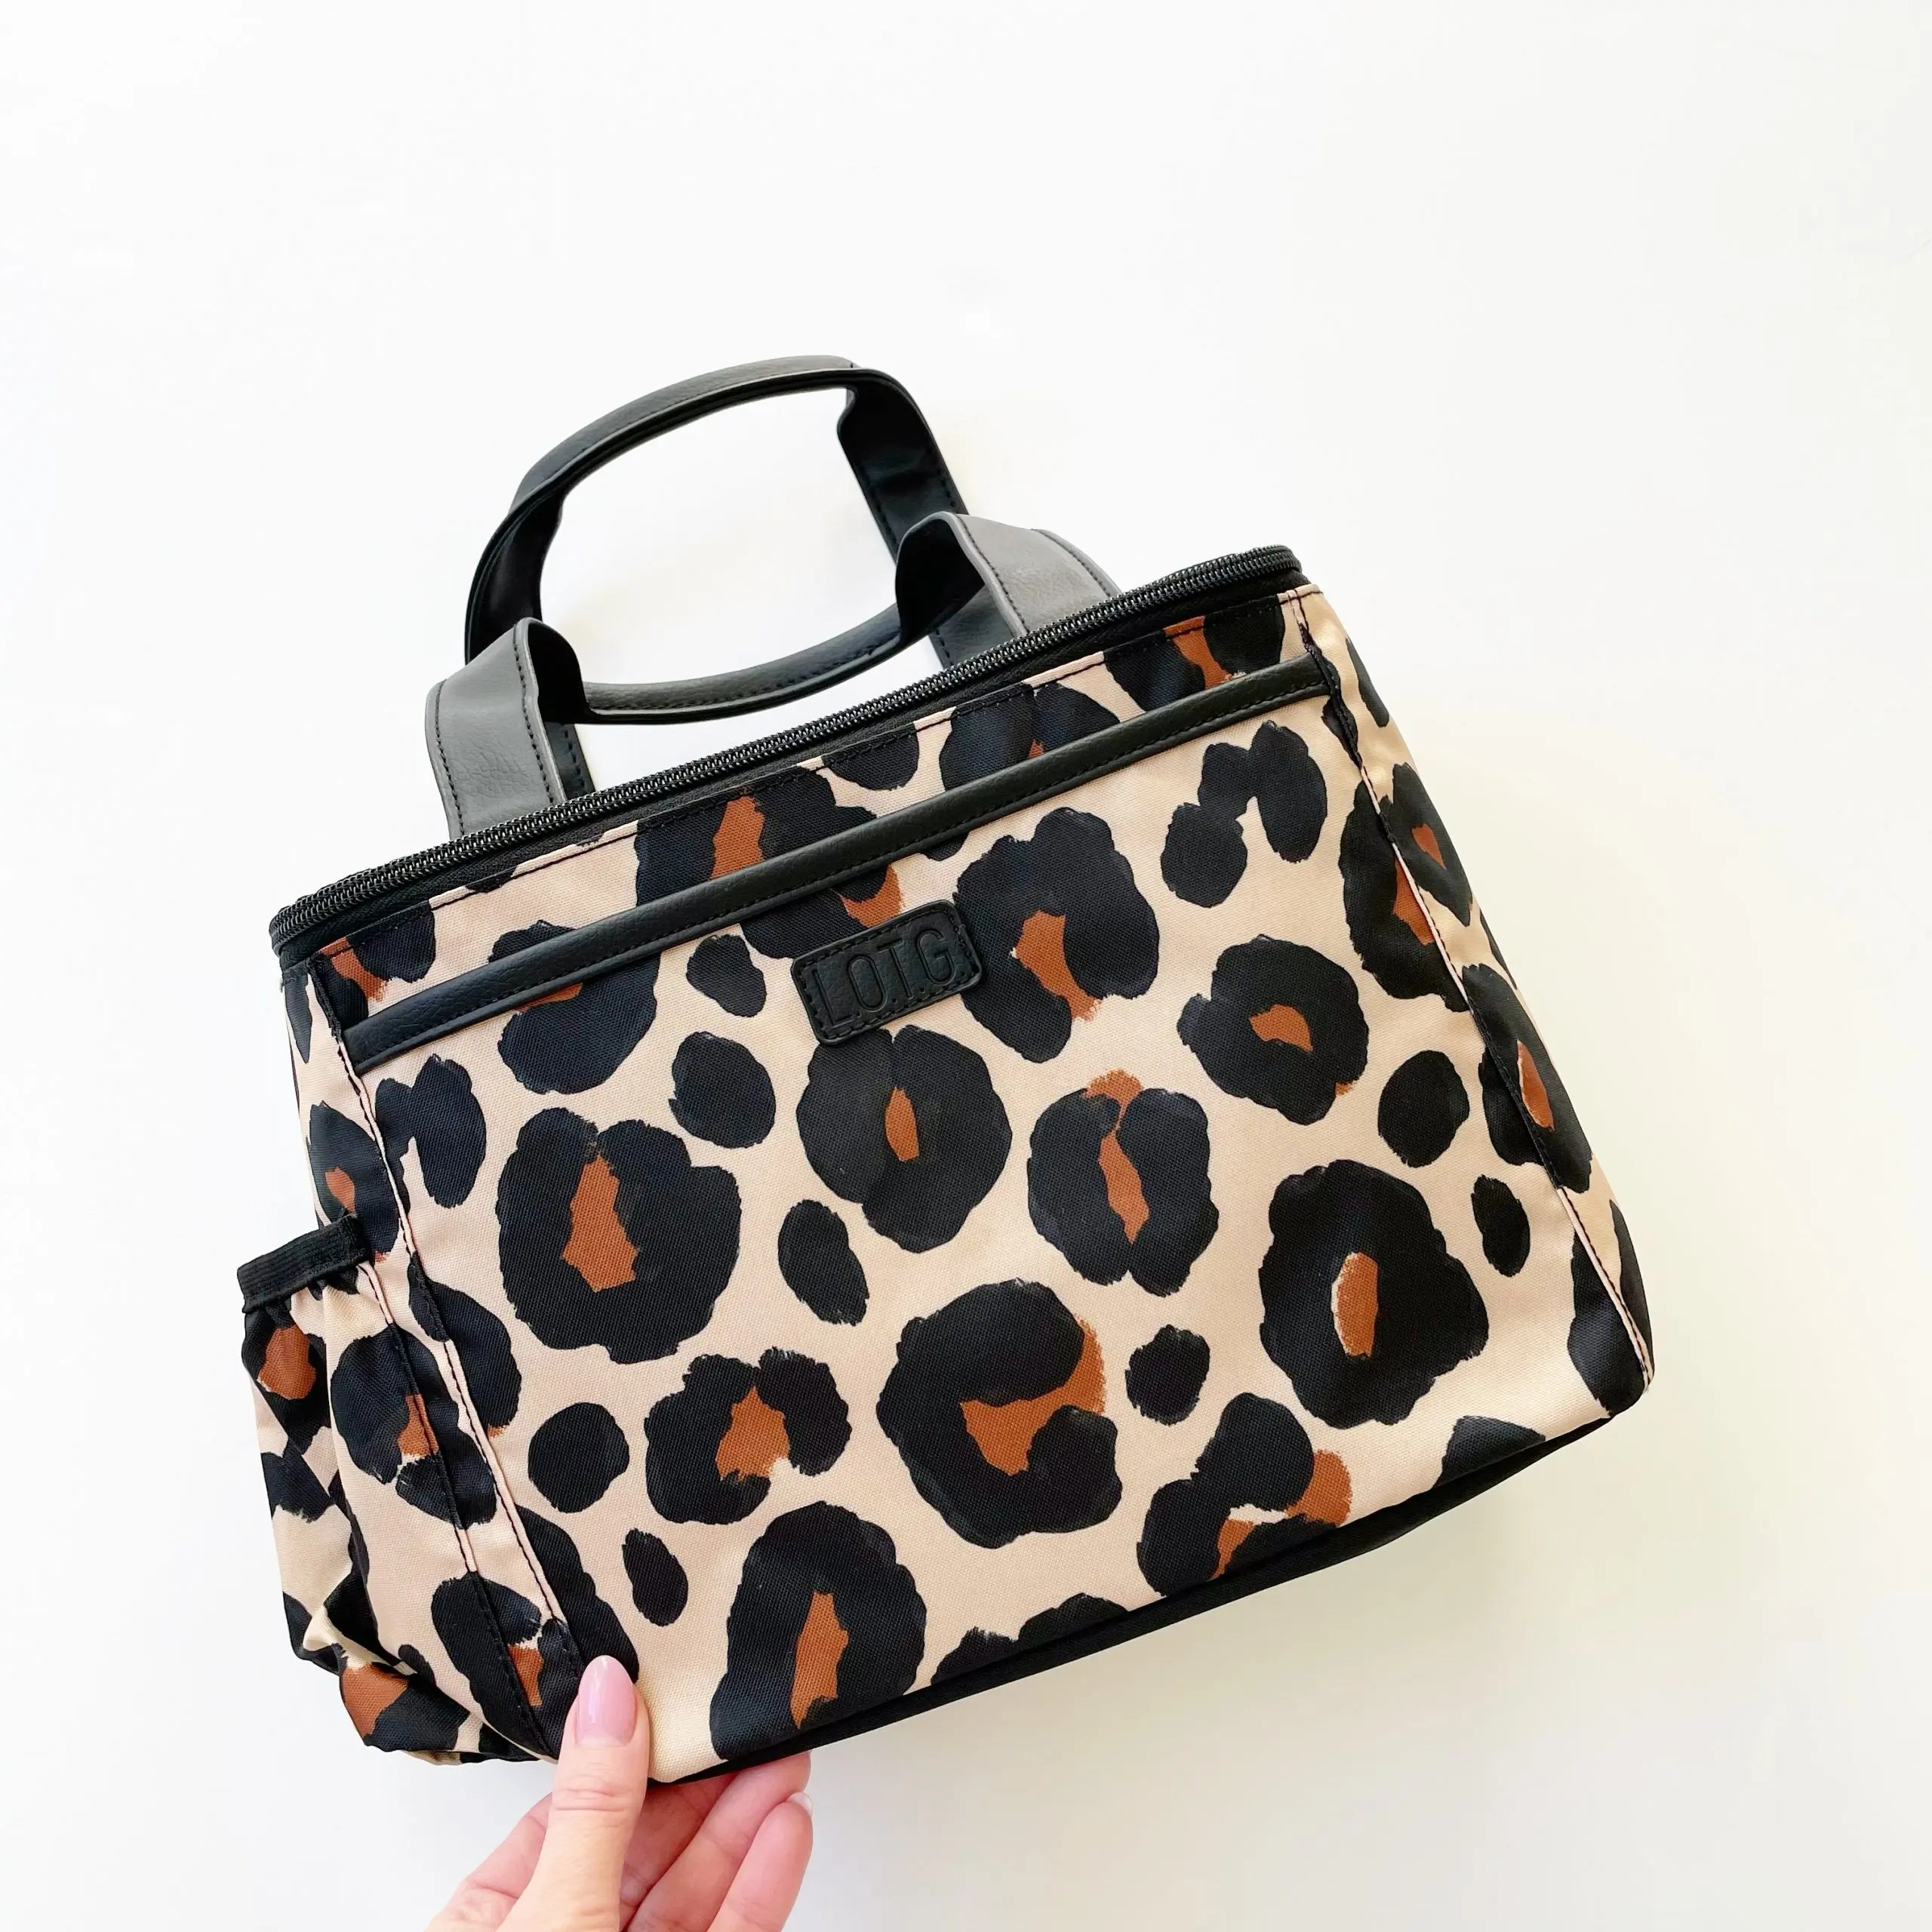 Fit+Fresh Leopard Print Lunch Bag Lunch on the Go | Lunch Bag for Women | Insulated Lunch Tote for Ladies, Girls, Female | Large Reusable Soft Lunch Box Purse Cooler for School, Work, Office | Large Lunch Tote (Leopard)